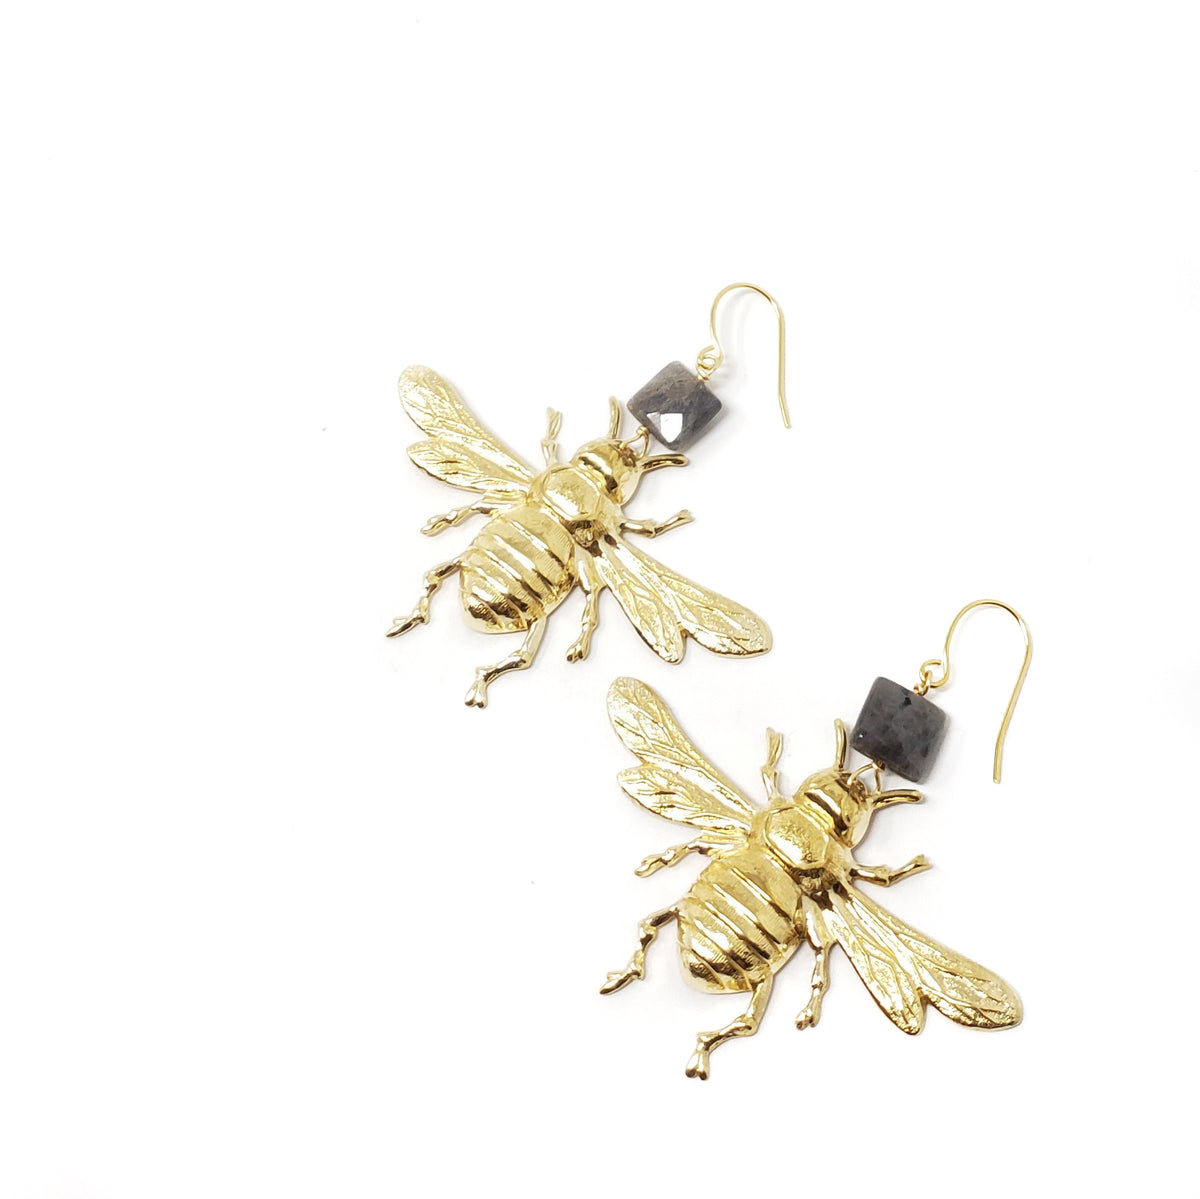 Apiary Earrings